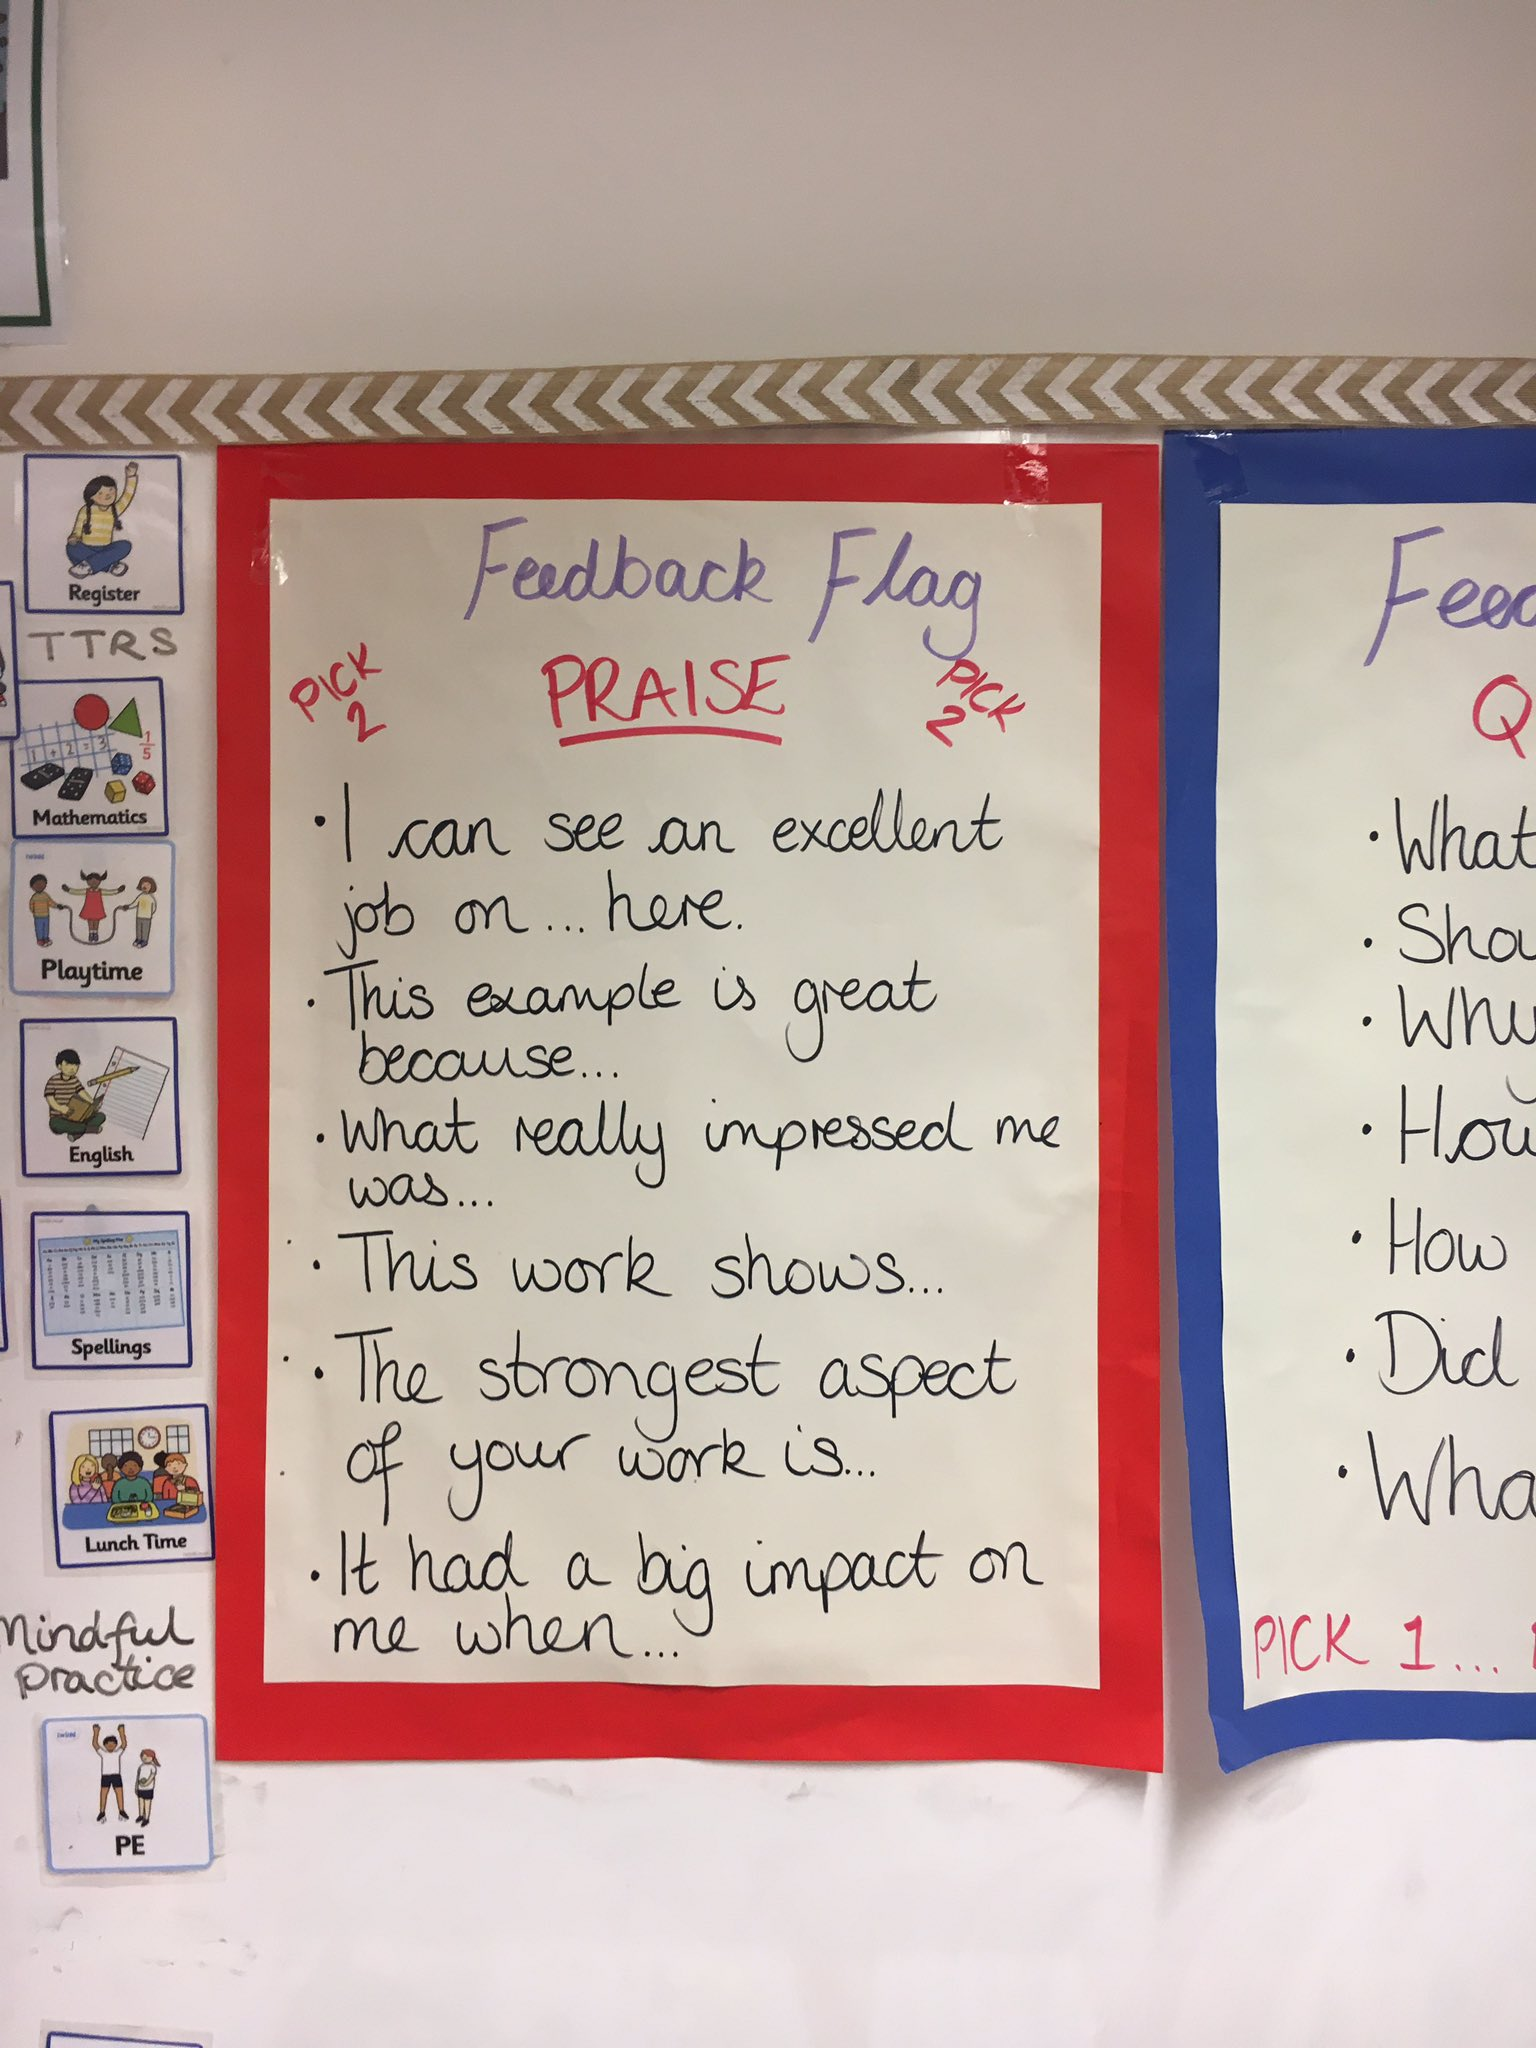 One of the ways to help with peer feedback is to provide the language for learners as they engage with their peers!  @JMU @JMUCoE @CorwinPress https://t.co/5185ljjXx8